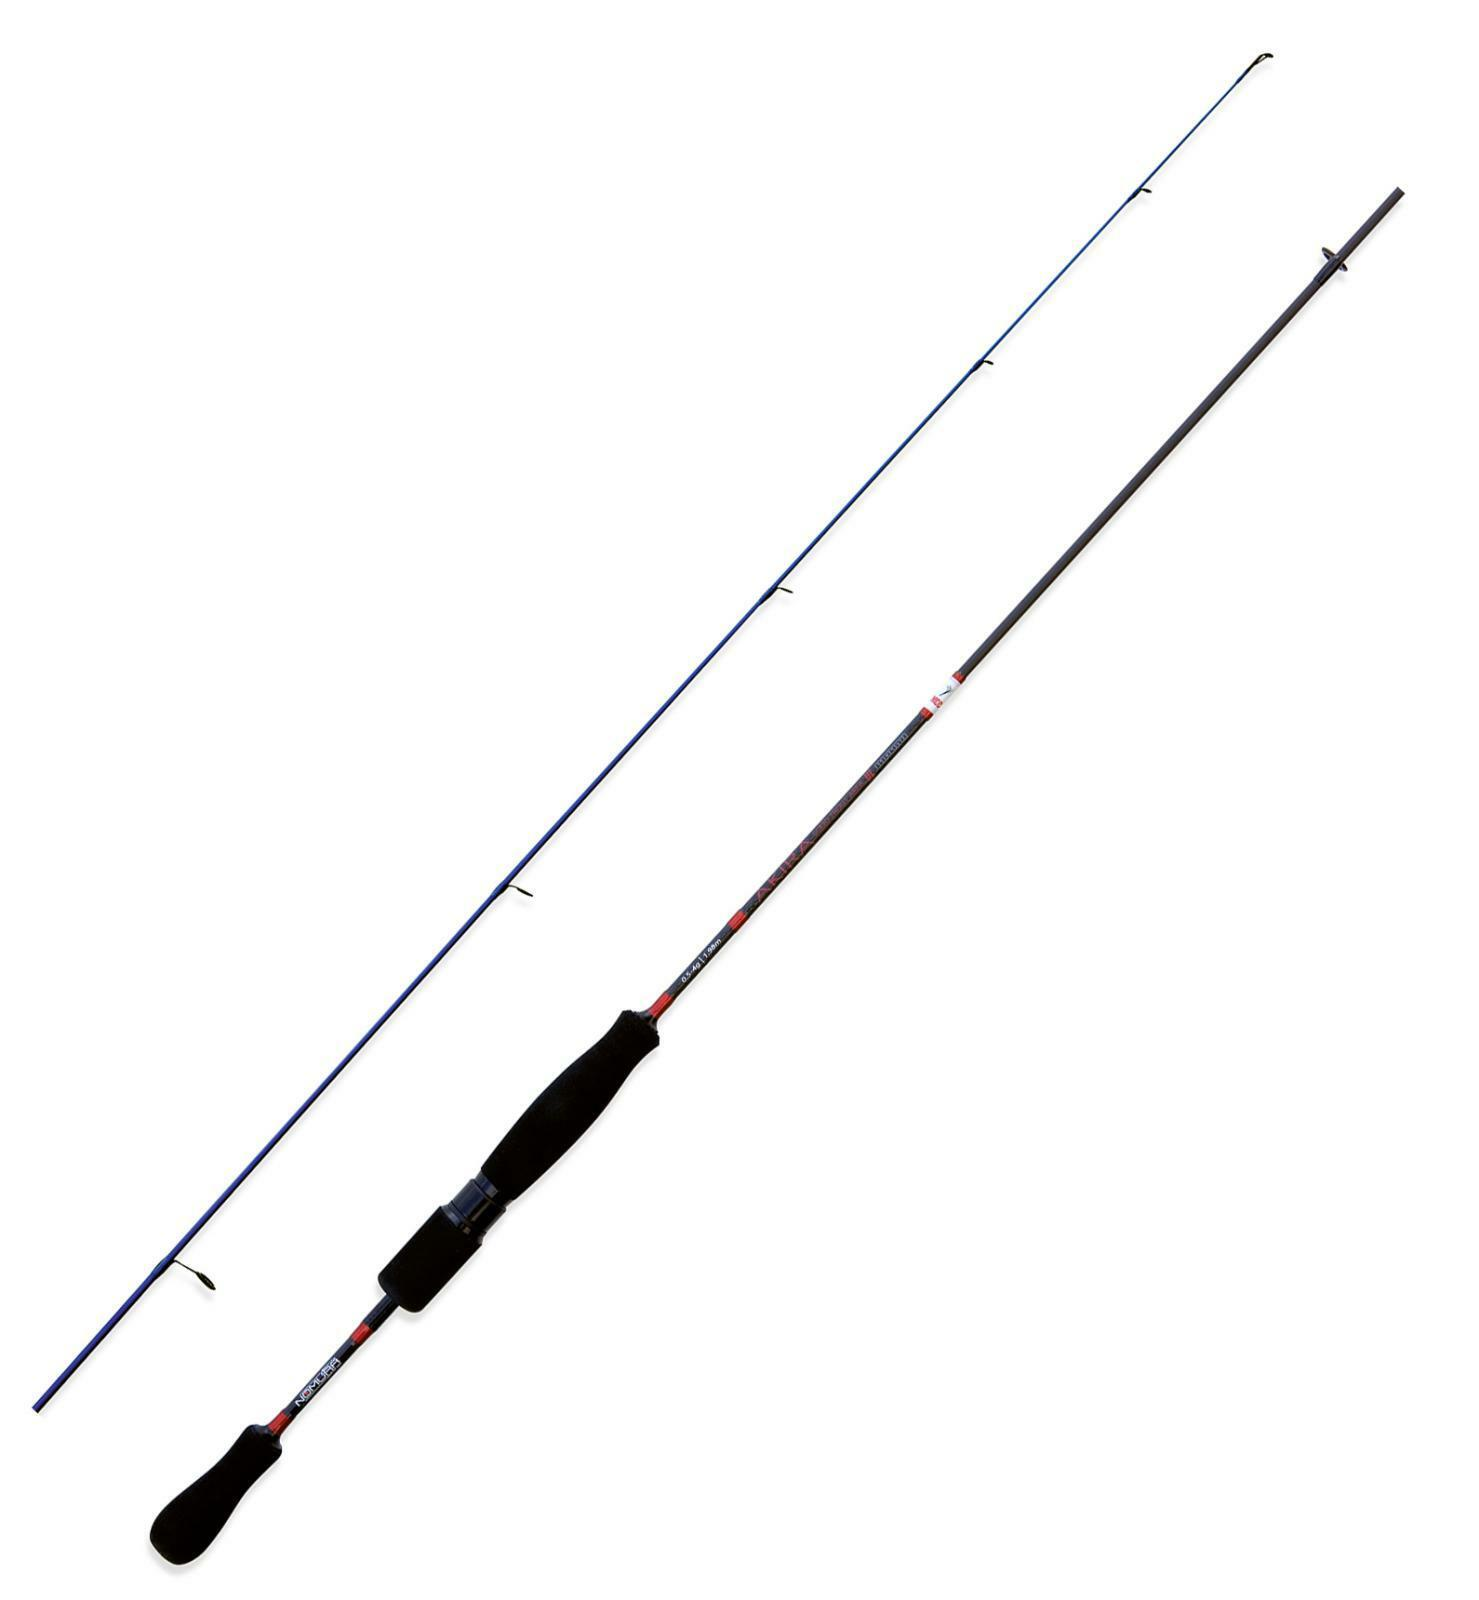 NM20520417 Nomura Canna pesca Trout Area Akira Solid 1,70cm  0,5-4 gr     RNG